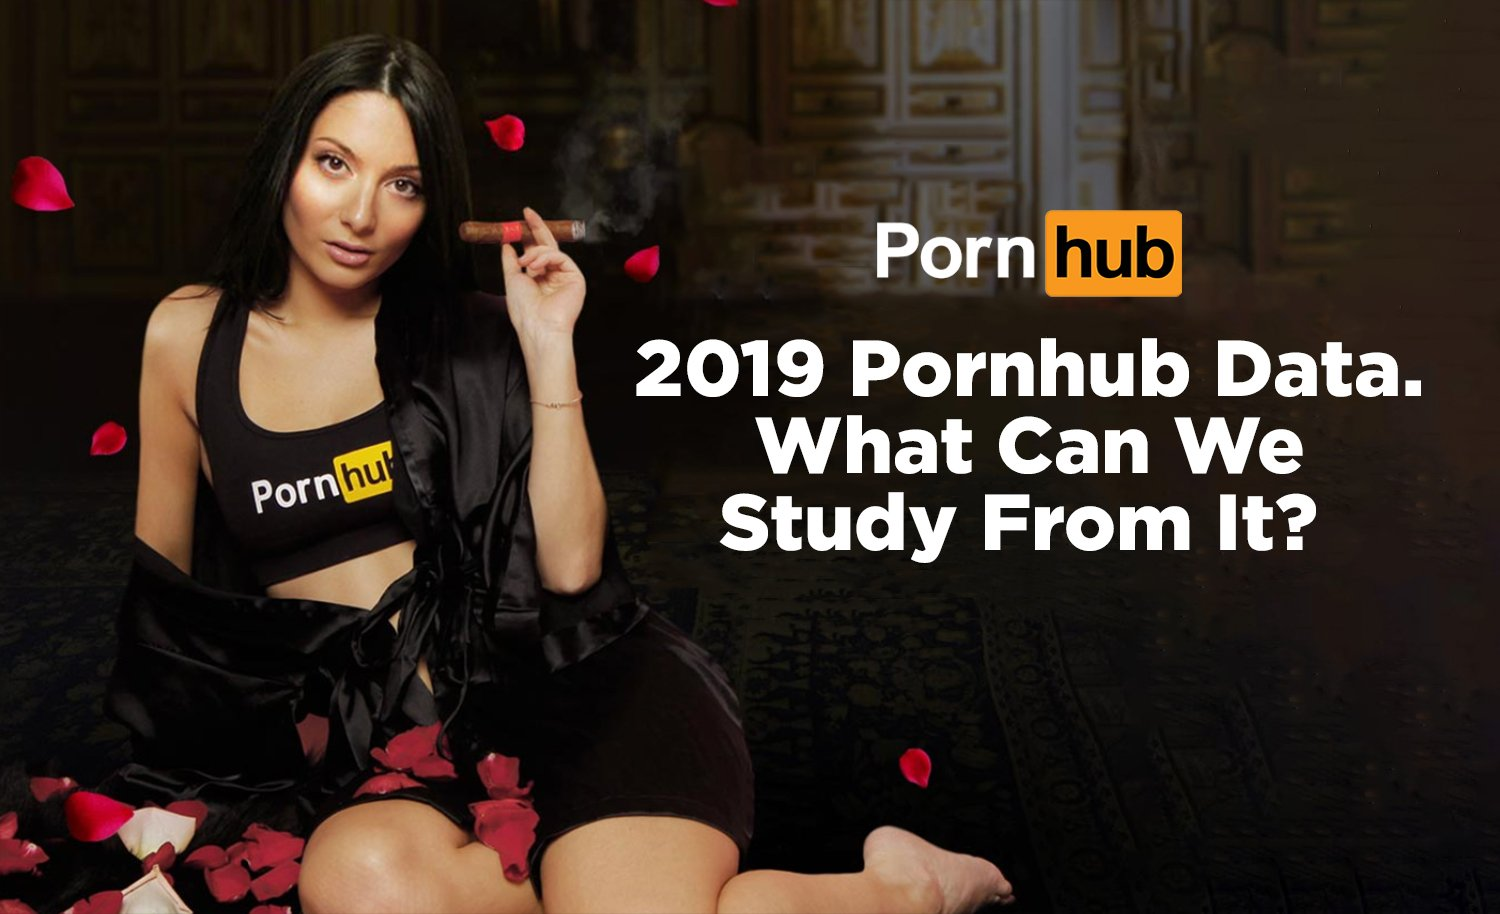 2019 Pornhub data. What Can we study from It?